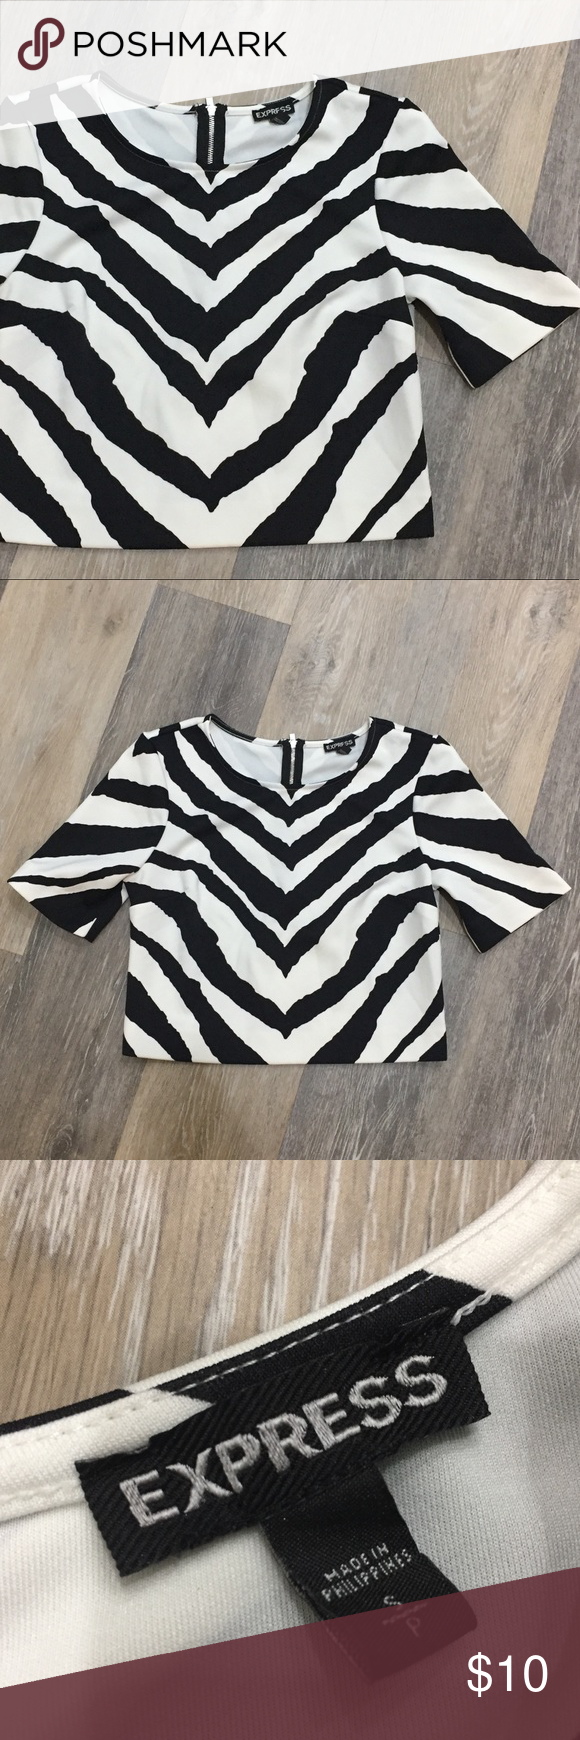 EXPRESS Half Sleeve Zebra Crop Top - size Small Super cute top in excellent condition! Size Small. Very comfortable. Has a heavyweight neoprene feel to it- it's actually 93% polyester, 7% spandex. Wear it with skinny jeans and black heels- or a neon colored waisted pencil skirt and chunky sandals! Express Tops Crop Tops